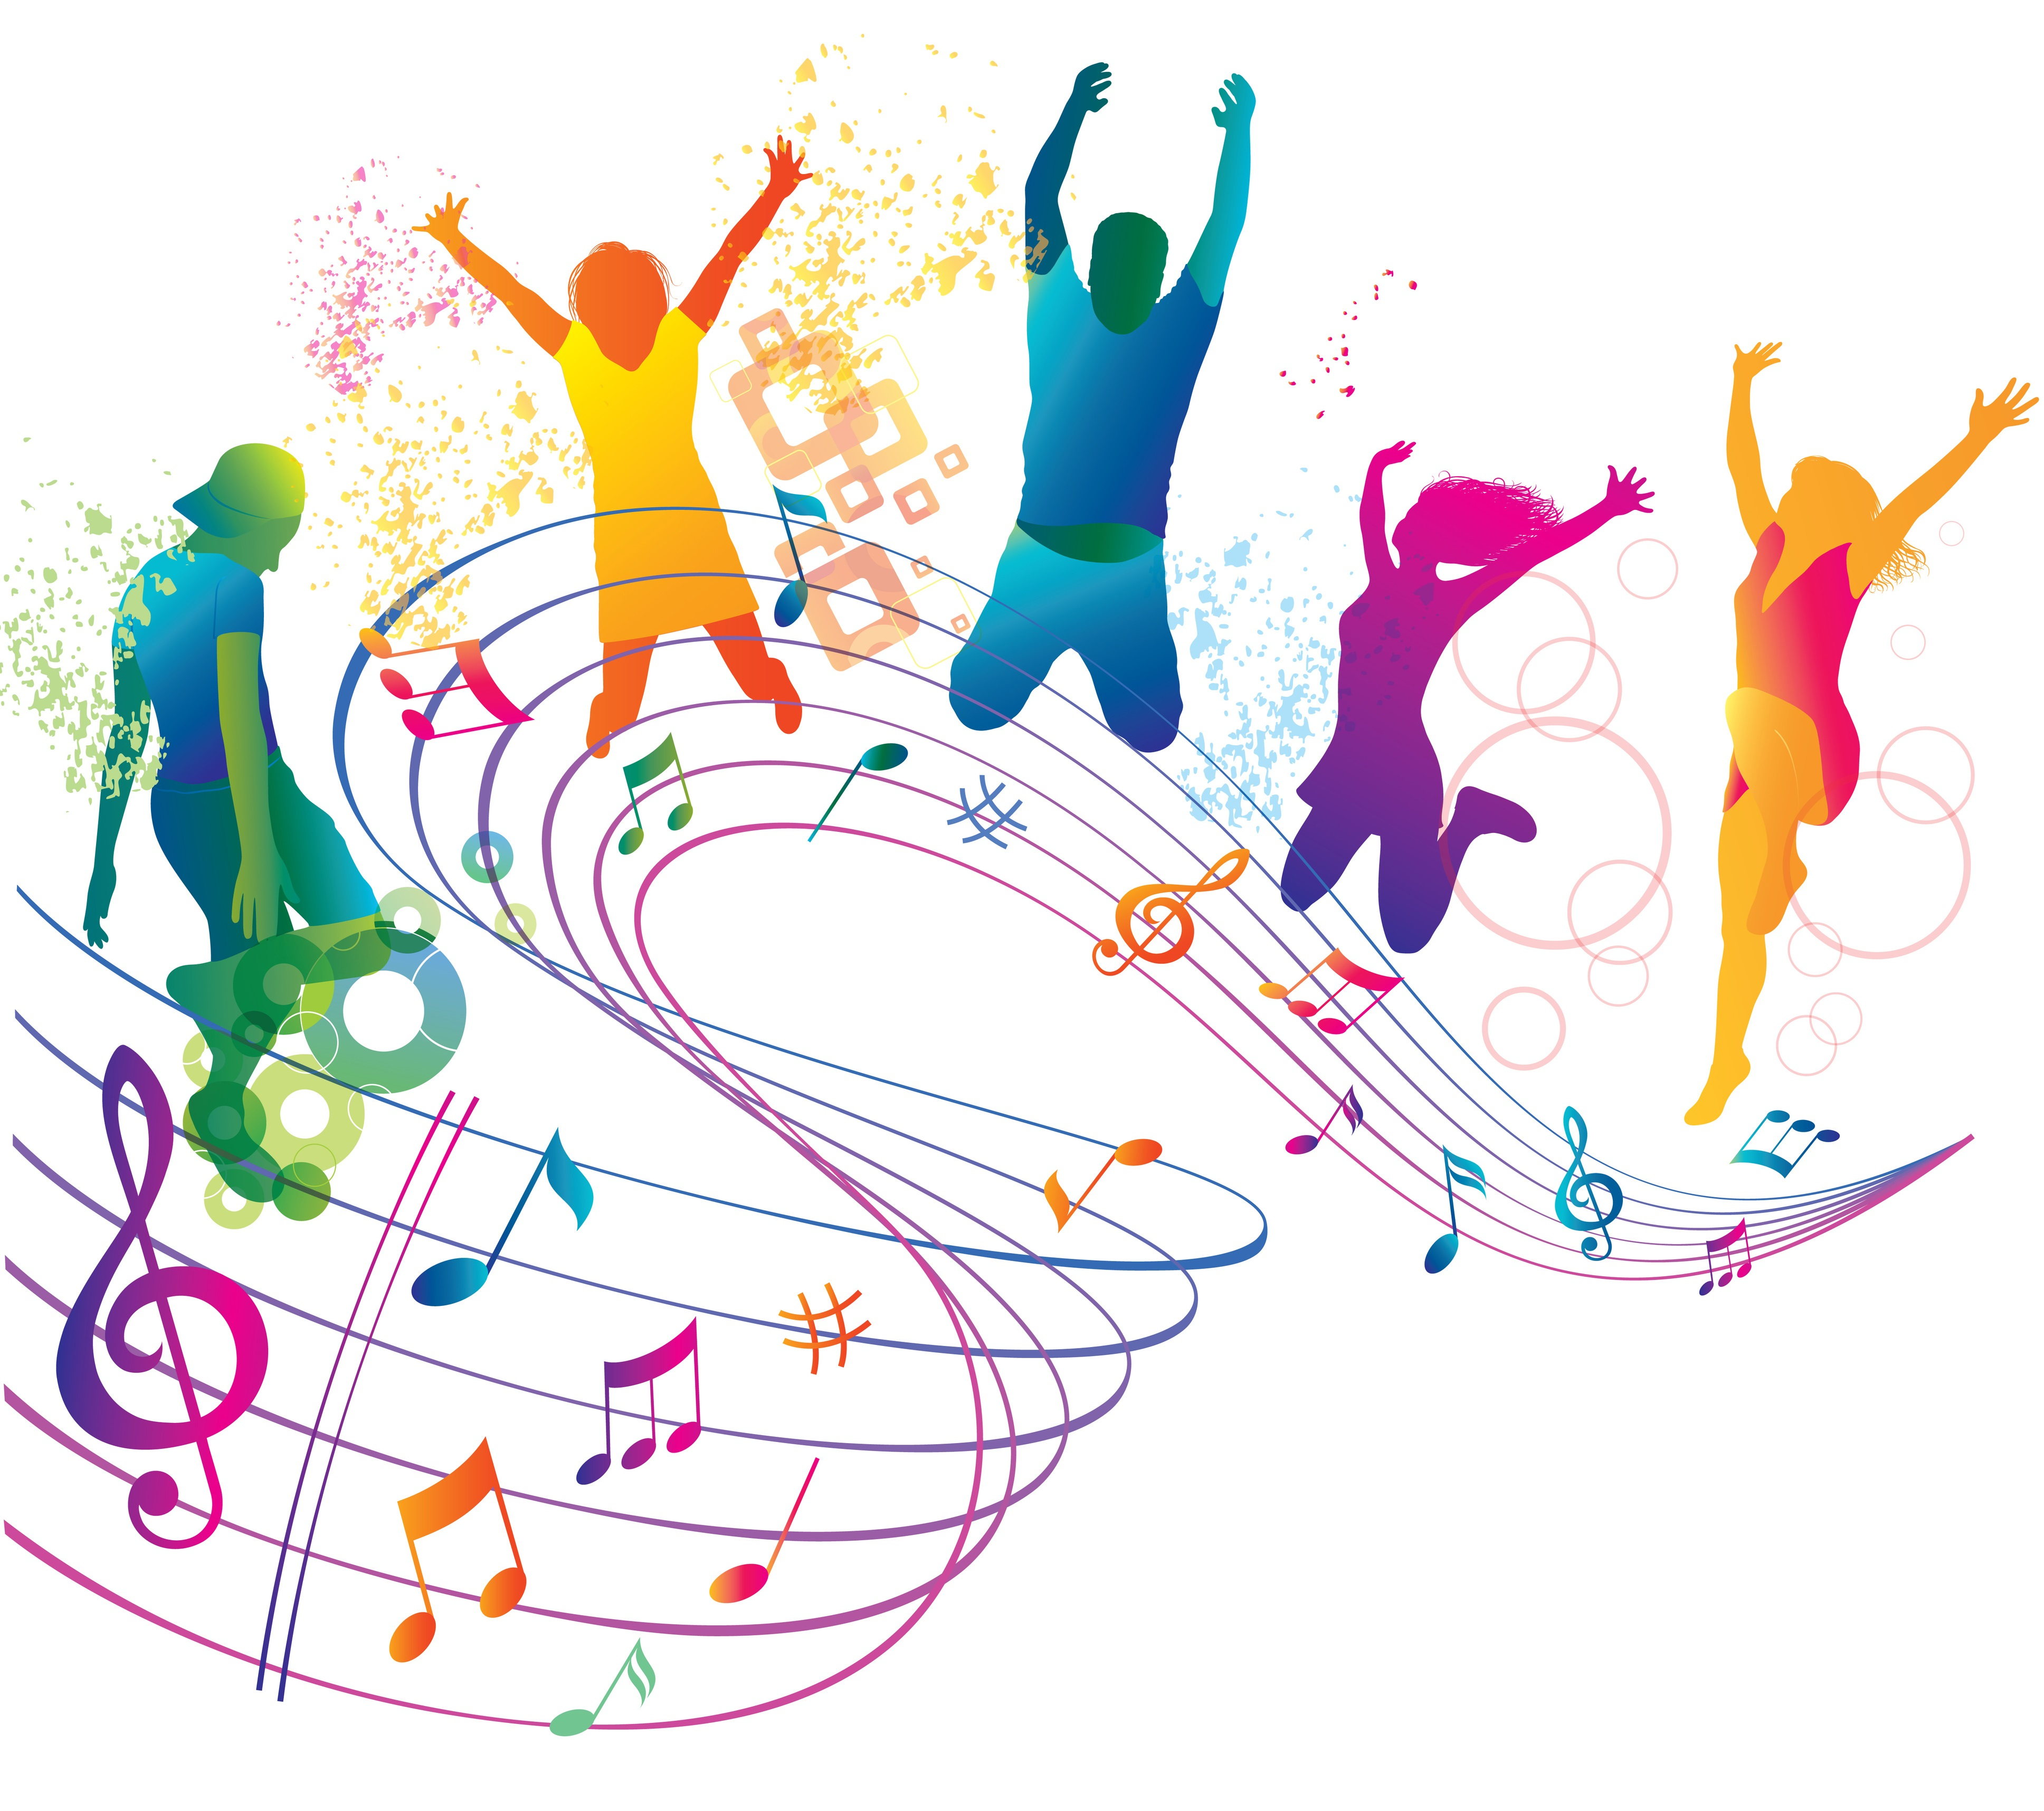 Musical notes background clipart panda free clipart images for 123 get on the dance floor song download